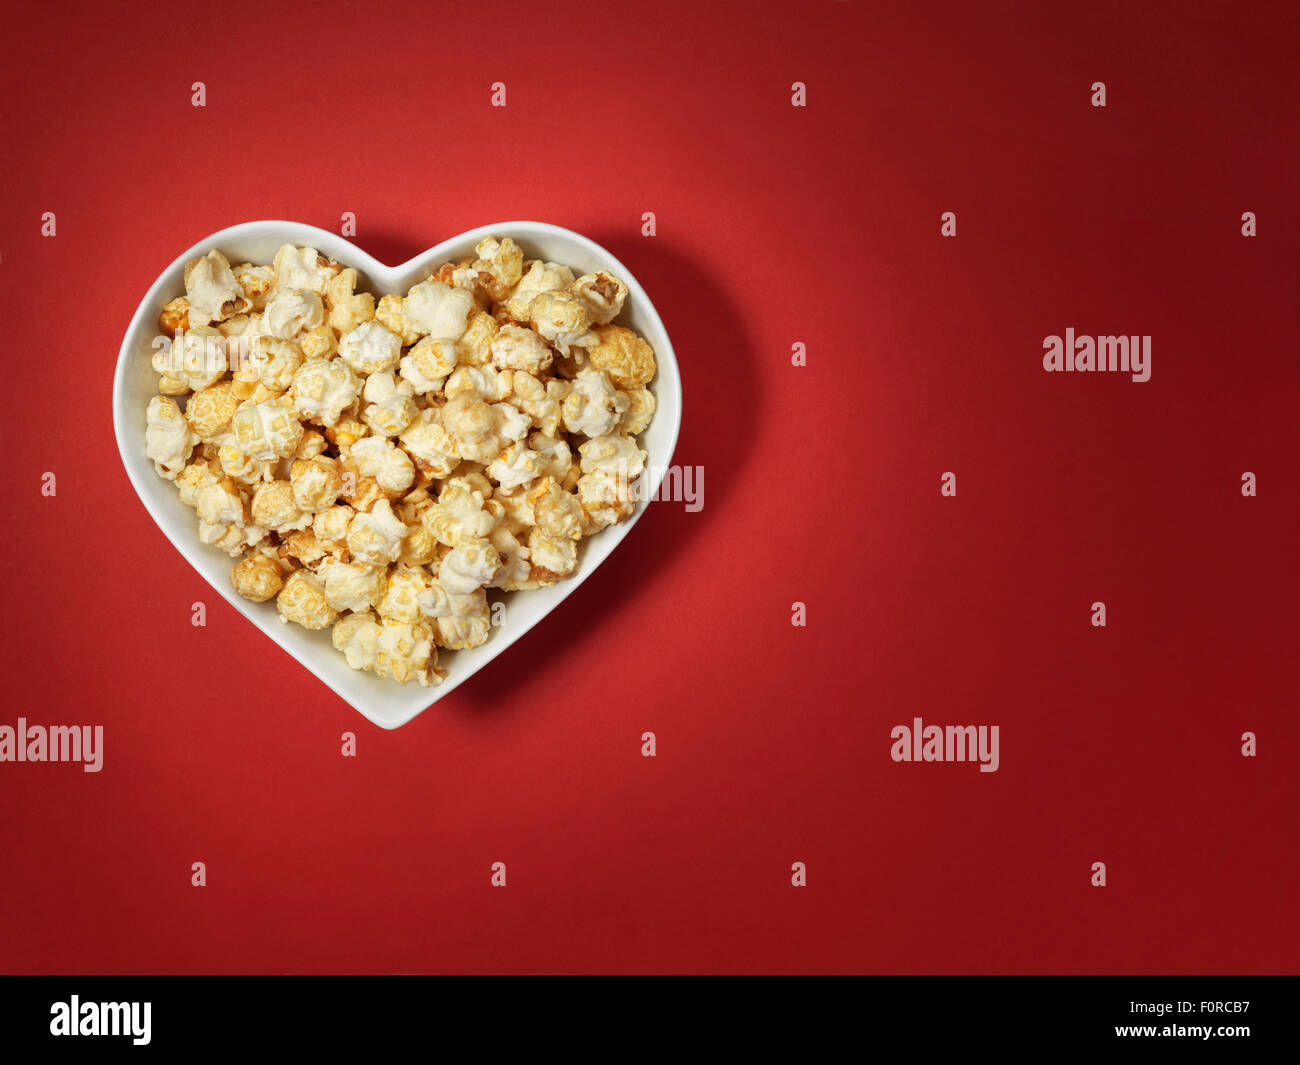 shot of cinema style popcorn in a heart shaped bowl on a bright red background with spotlit, vignette style lighting and offset Stock Photo